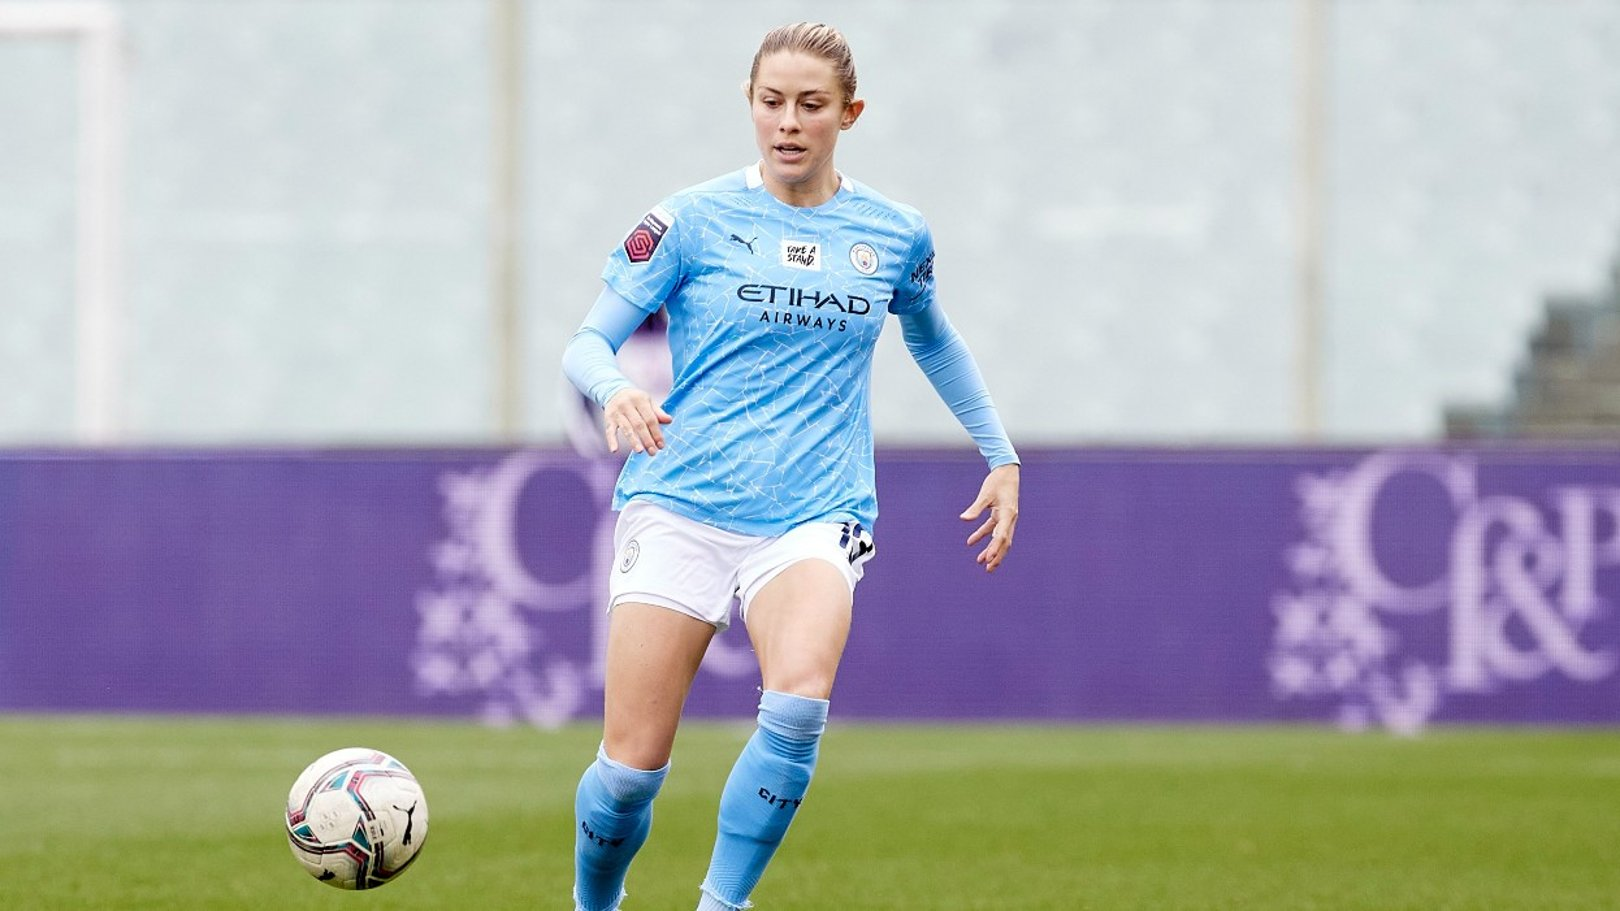 Dahlkemper: Barca clash sums up why I joined City